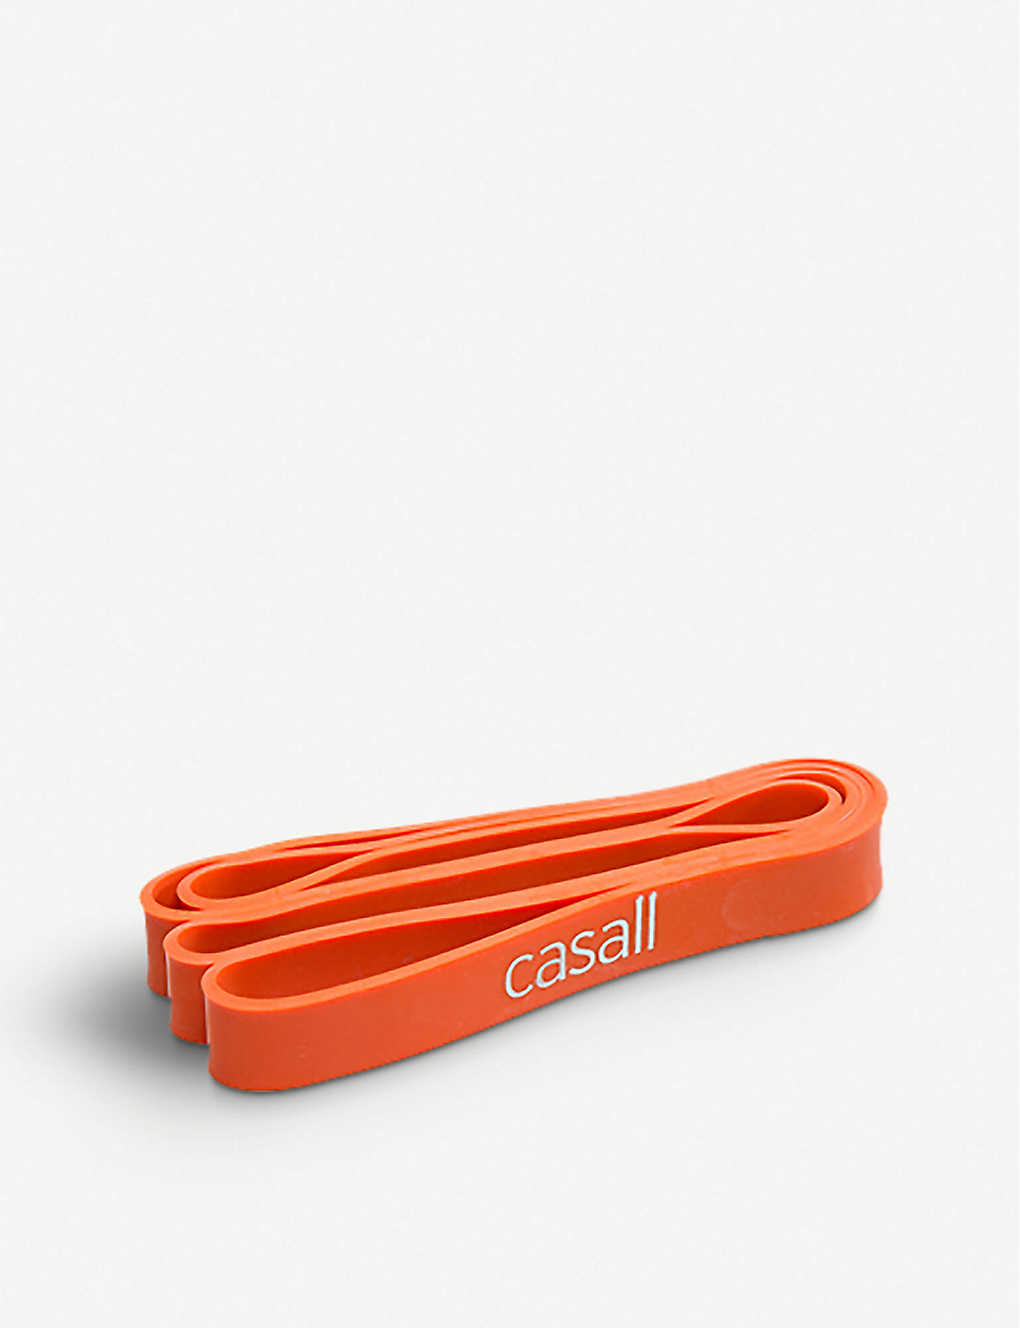 CASALL: Hard rubber resistance band 208cm